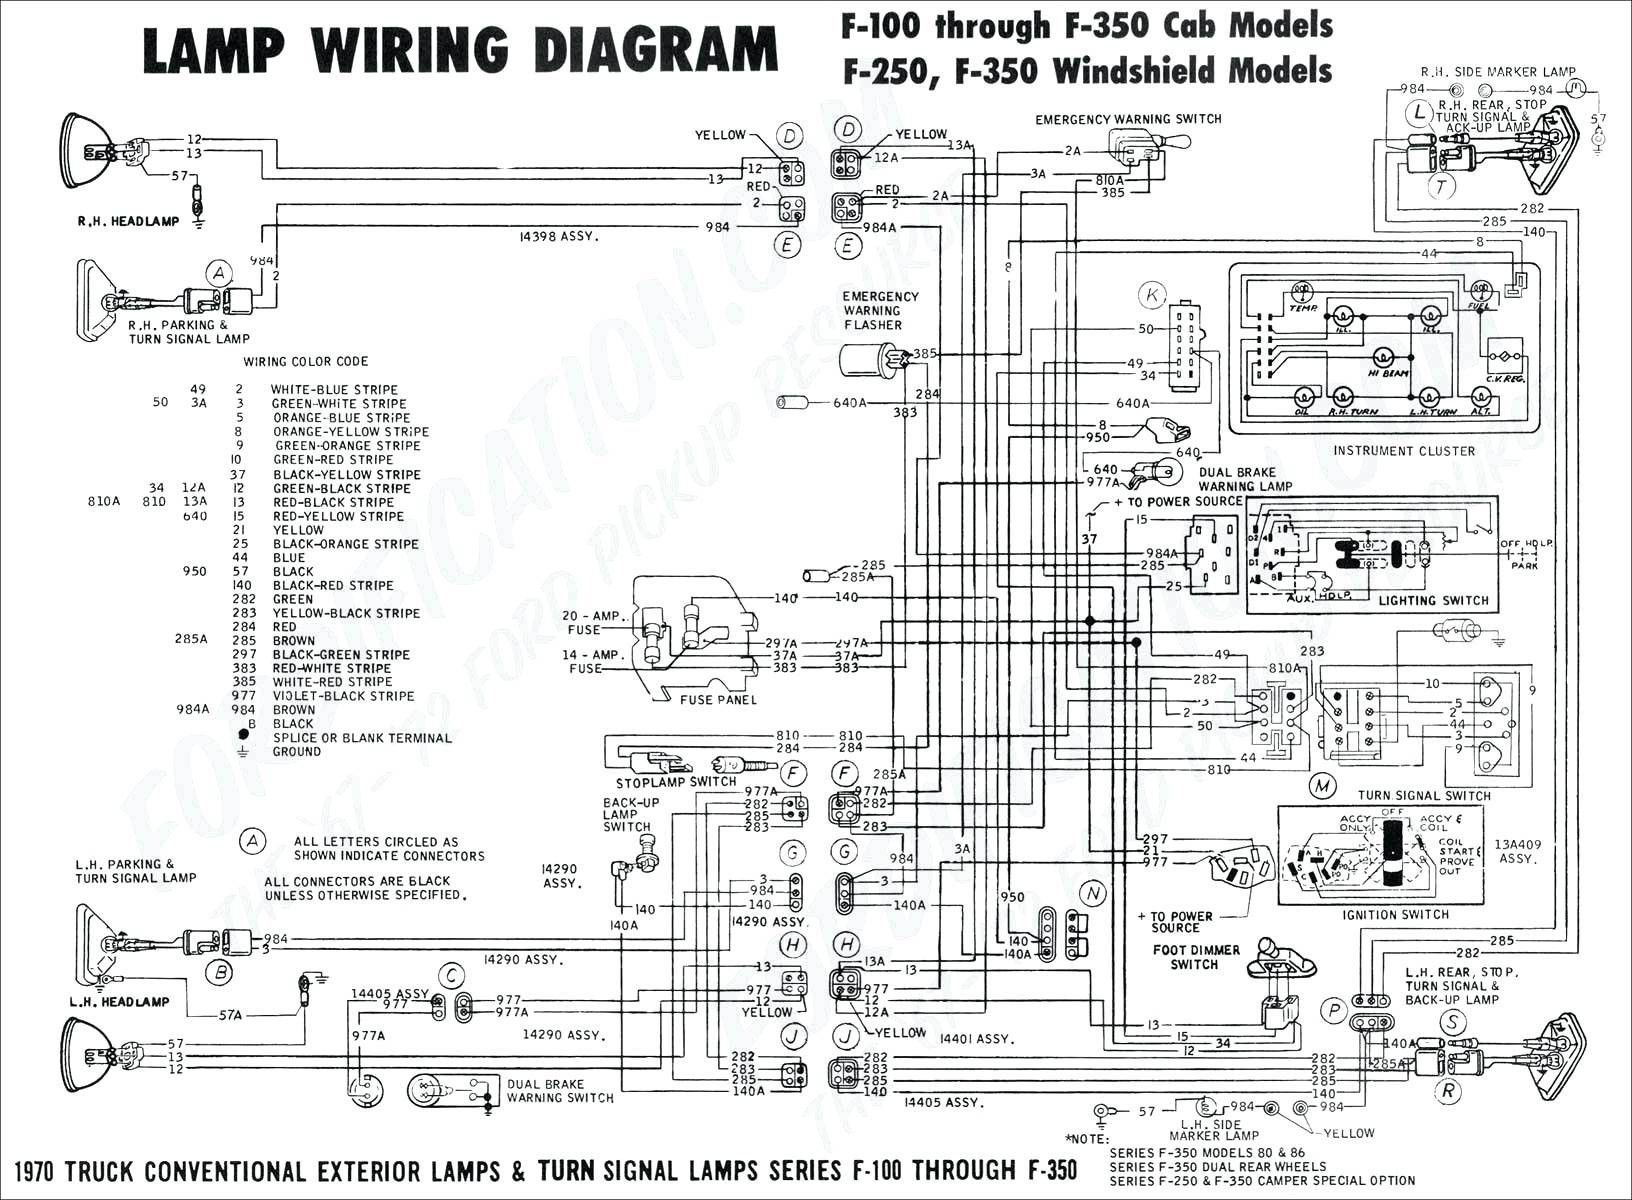 Western Plows Wiring Diagram Awesome In 2020 Trailer Wiring Diagram Electrical Wiring Diagram Diagram